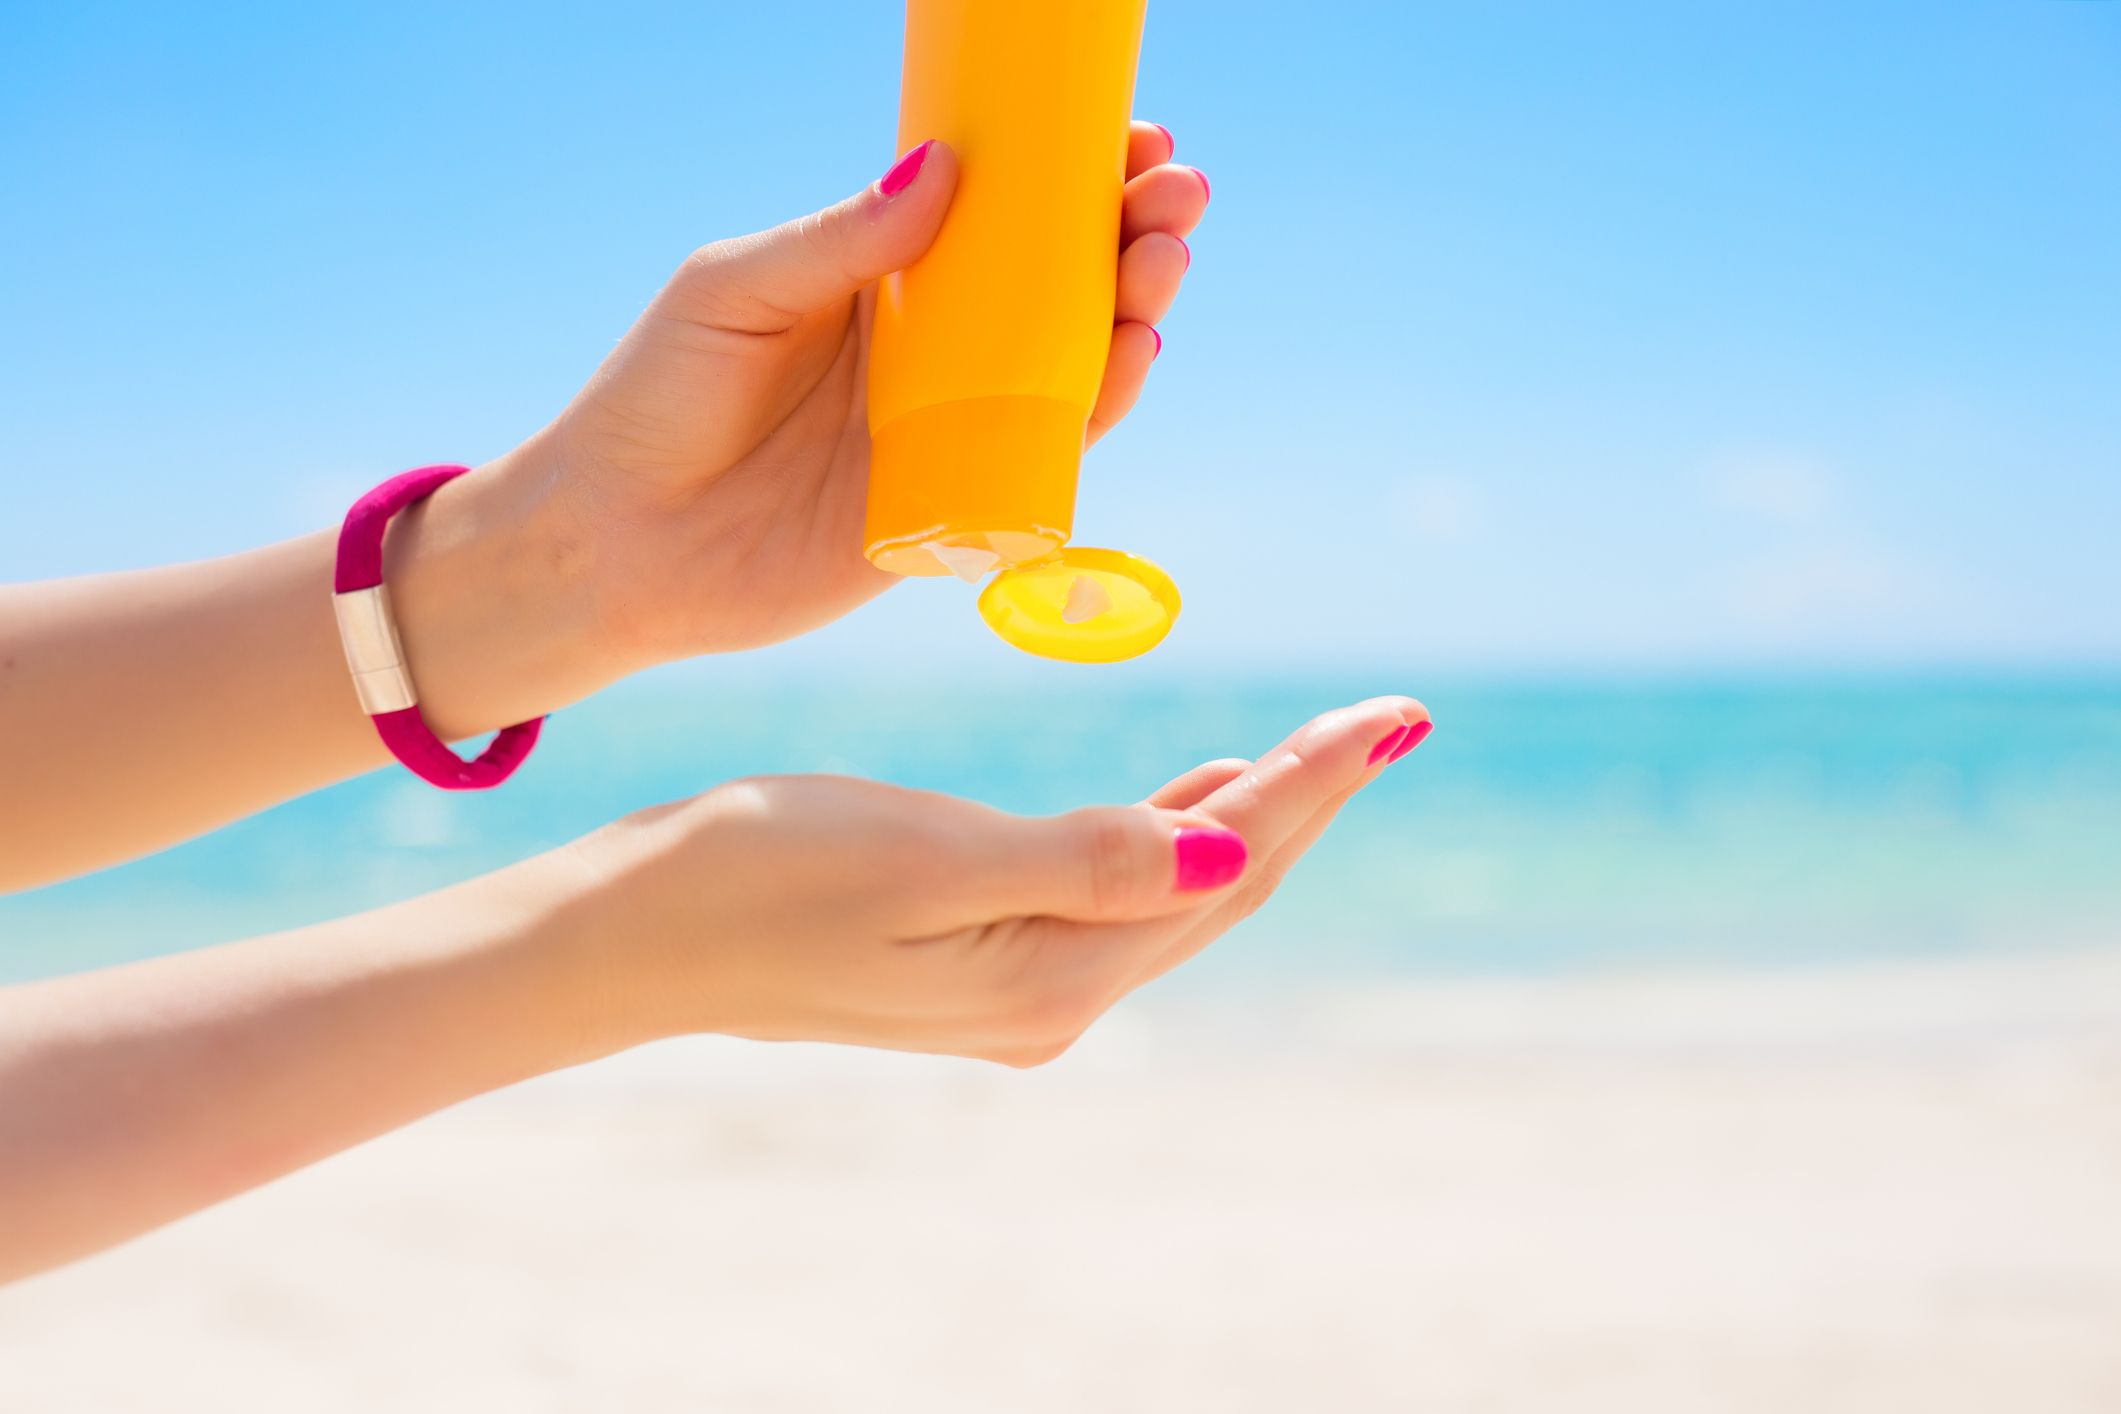 Is Oxybenzone Safe in Sunscreen? - Possible Oxybenzone Side Effects